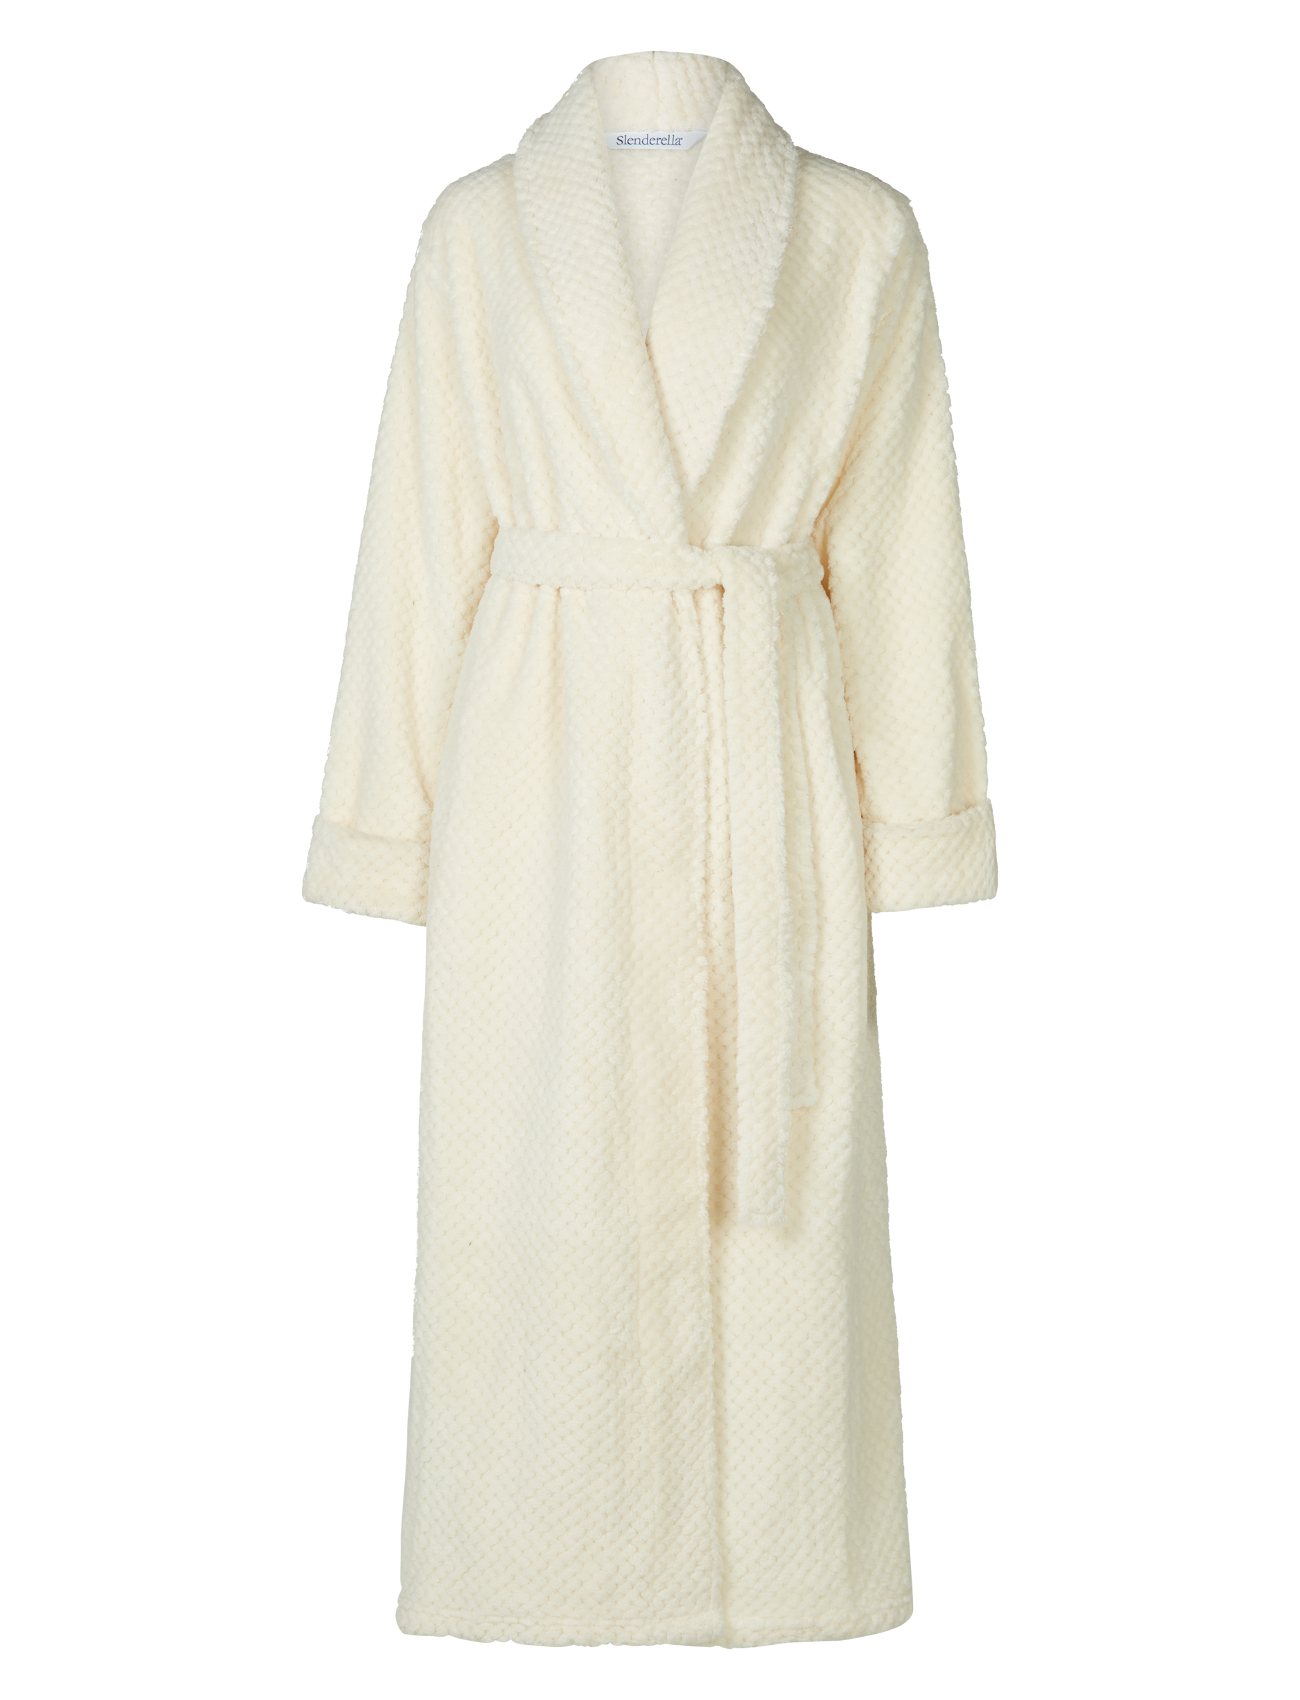 Luxor Linens Luxury Bath Robe - Egyptian Egyptian Cotton His & Hers Waffle Robes with Gift Packaging - Perfect Bathrobe Wedding Gift. Sold by Freshware. $ Robe Factory Star Trek Adult Uhura Fleece Bath Robe Costume. Sold by Kryptonite Kollectibles. $ $